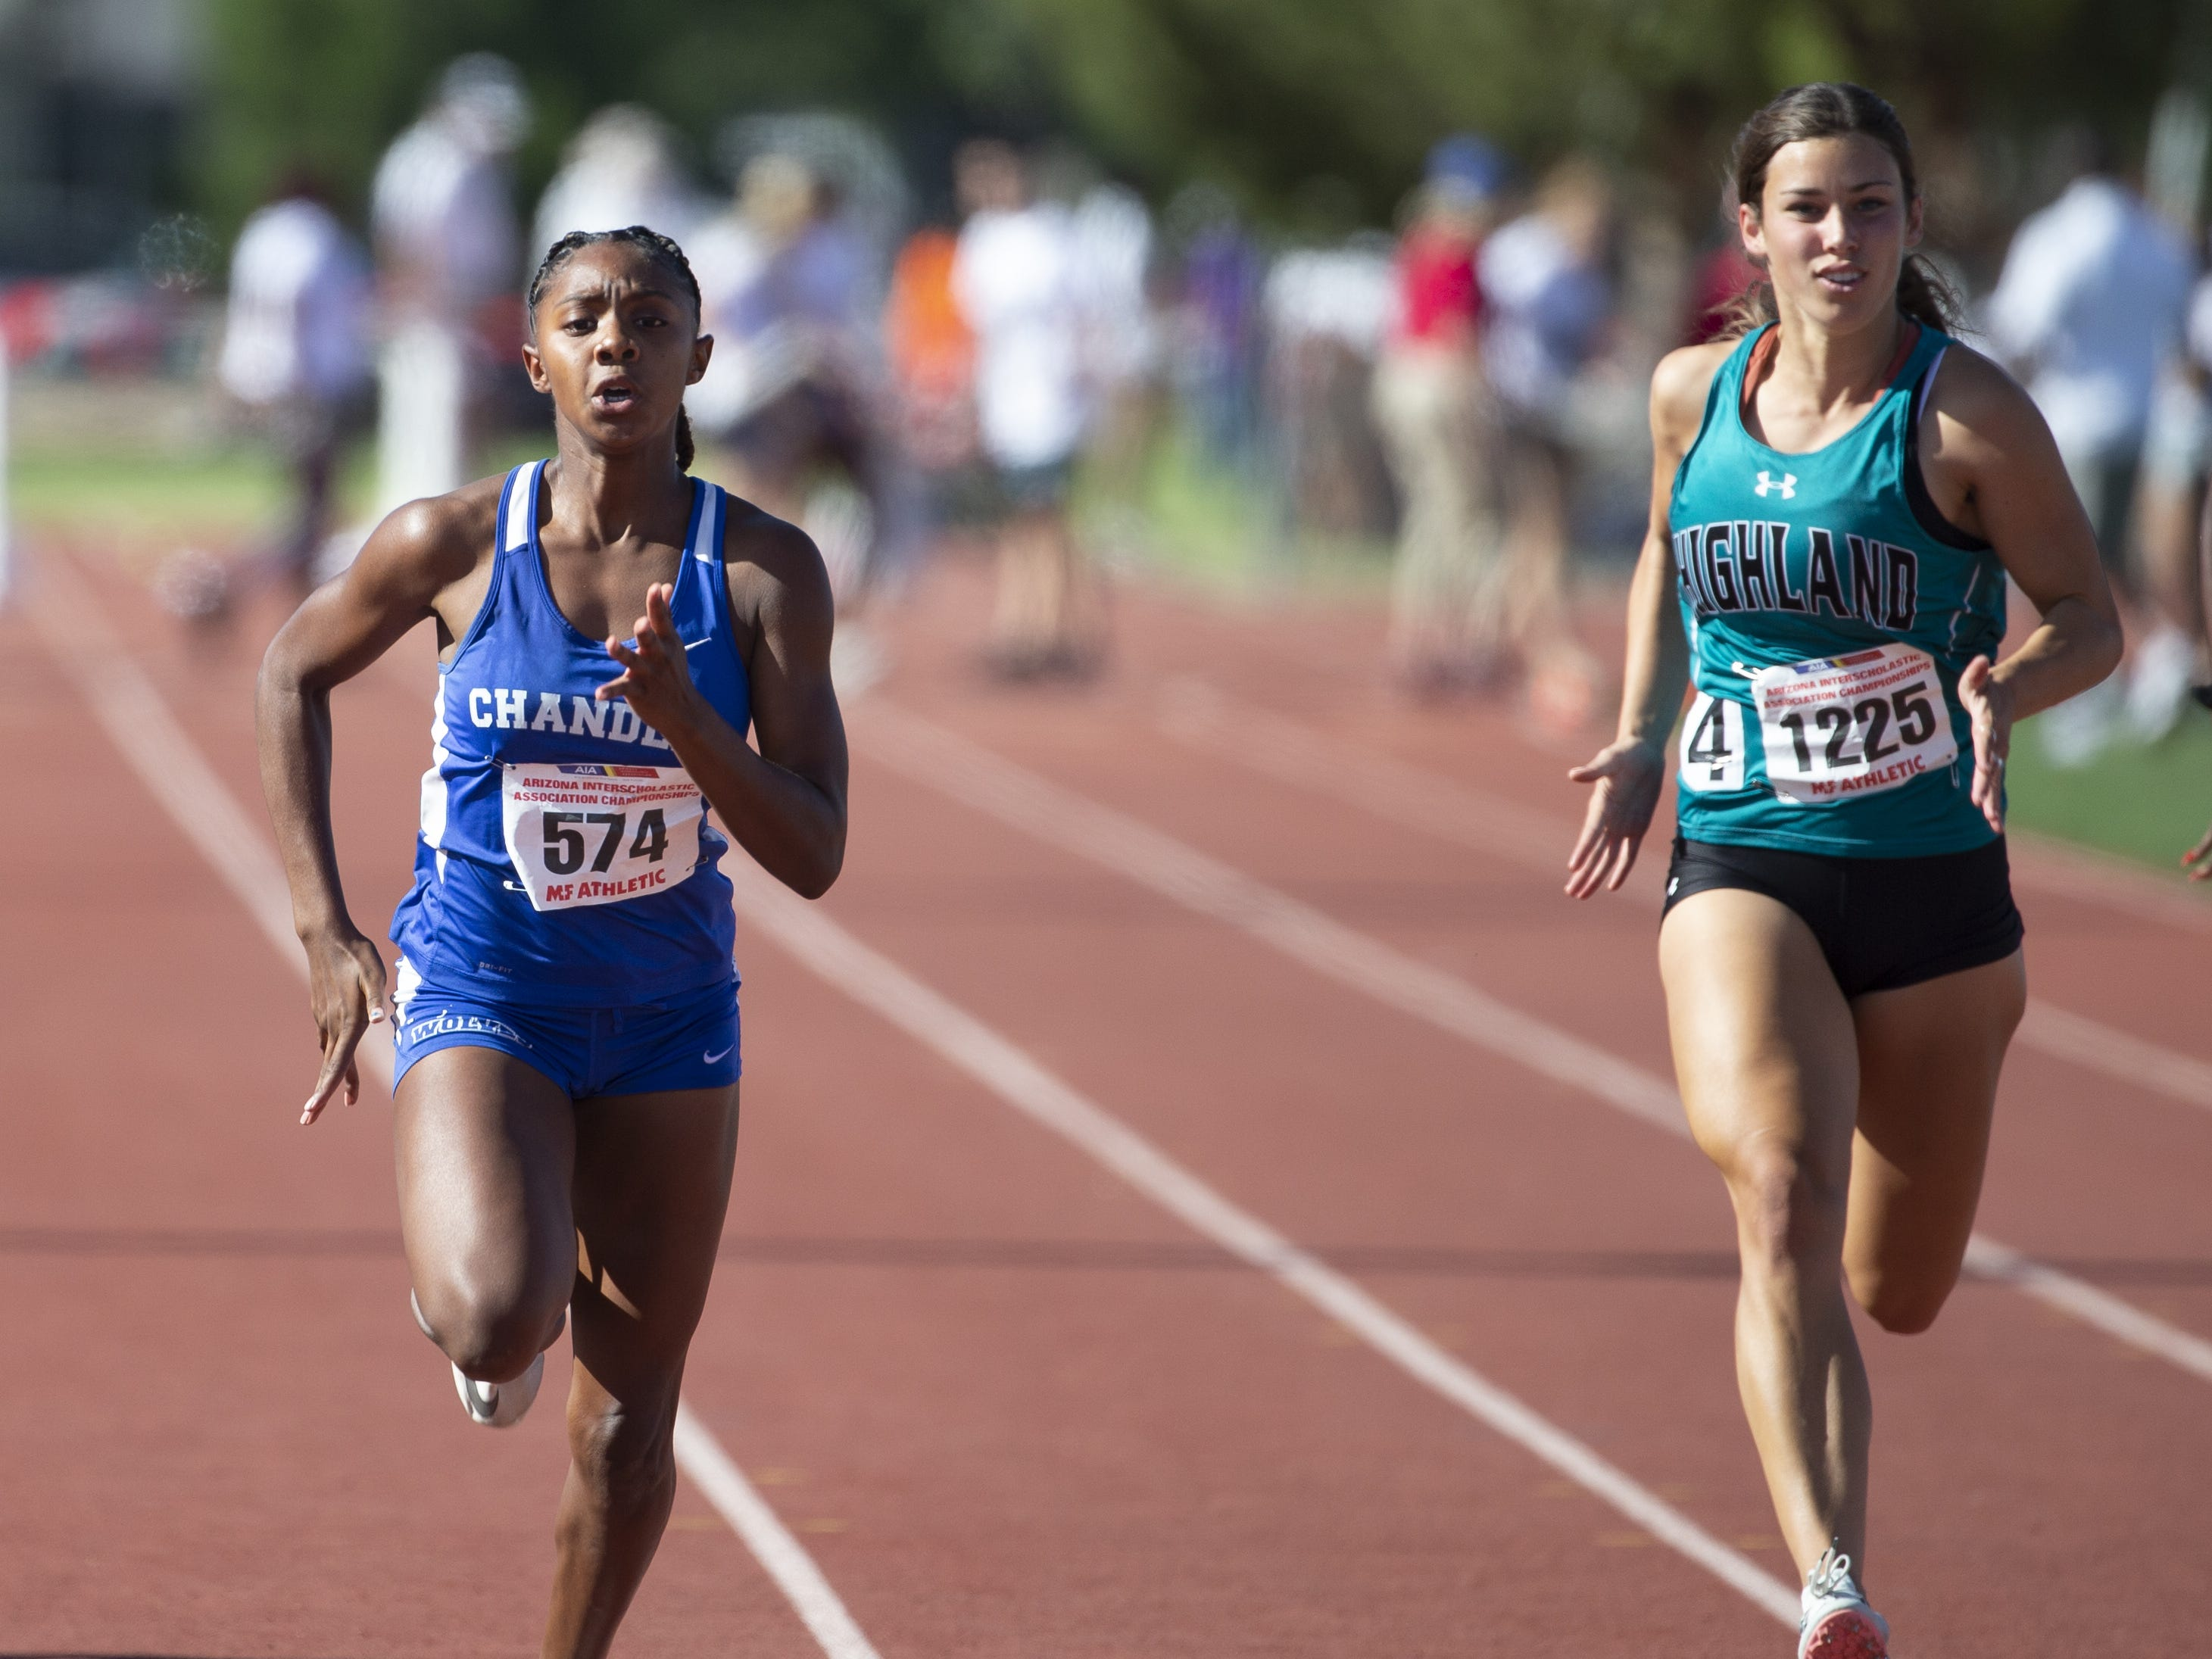 Chandler's Trinity Henderson and Highland's Secret McEuen compete in the Girls 100 meter dash Div. I during the state track and field meet at Mesa Community college on May 1, 2019.